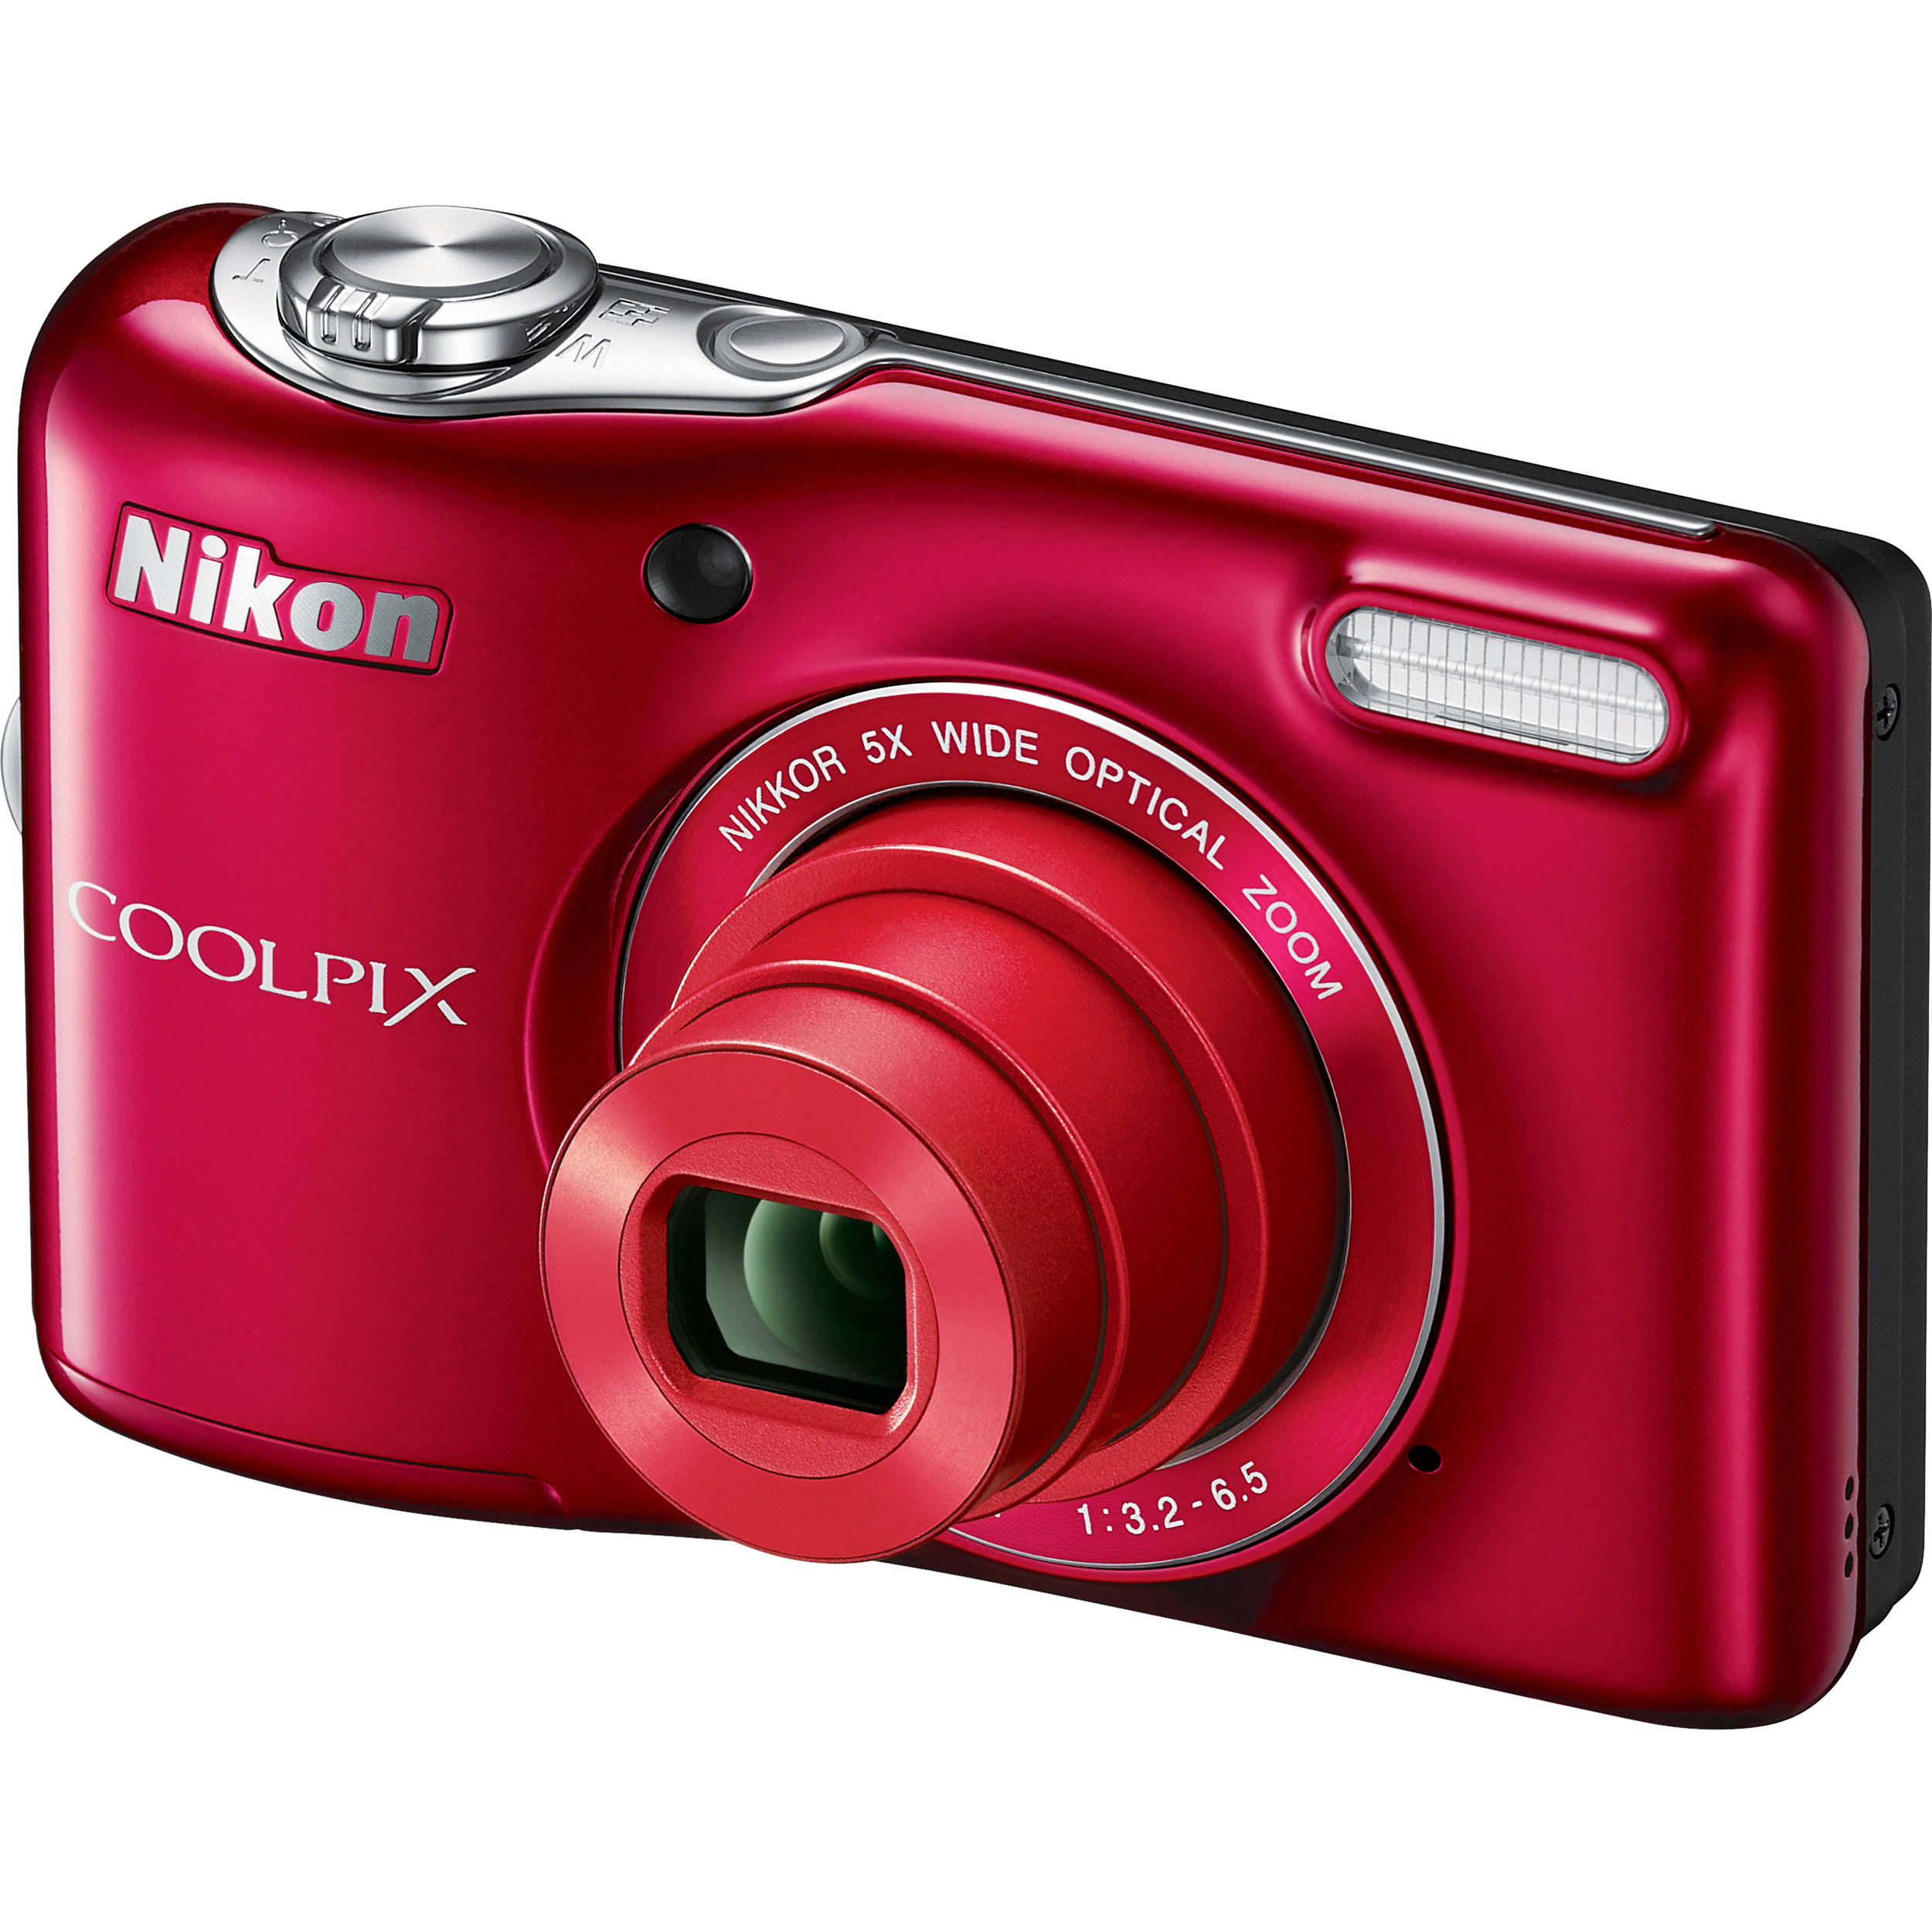 Nikon COOLPIX L32 Digital Camera Red B&H Video